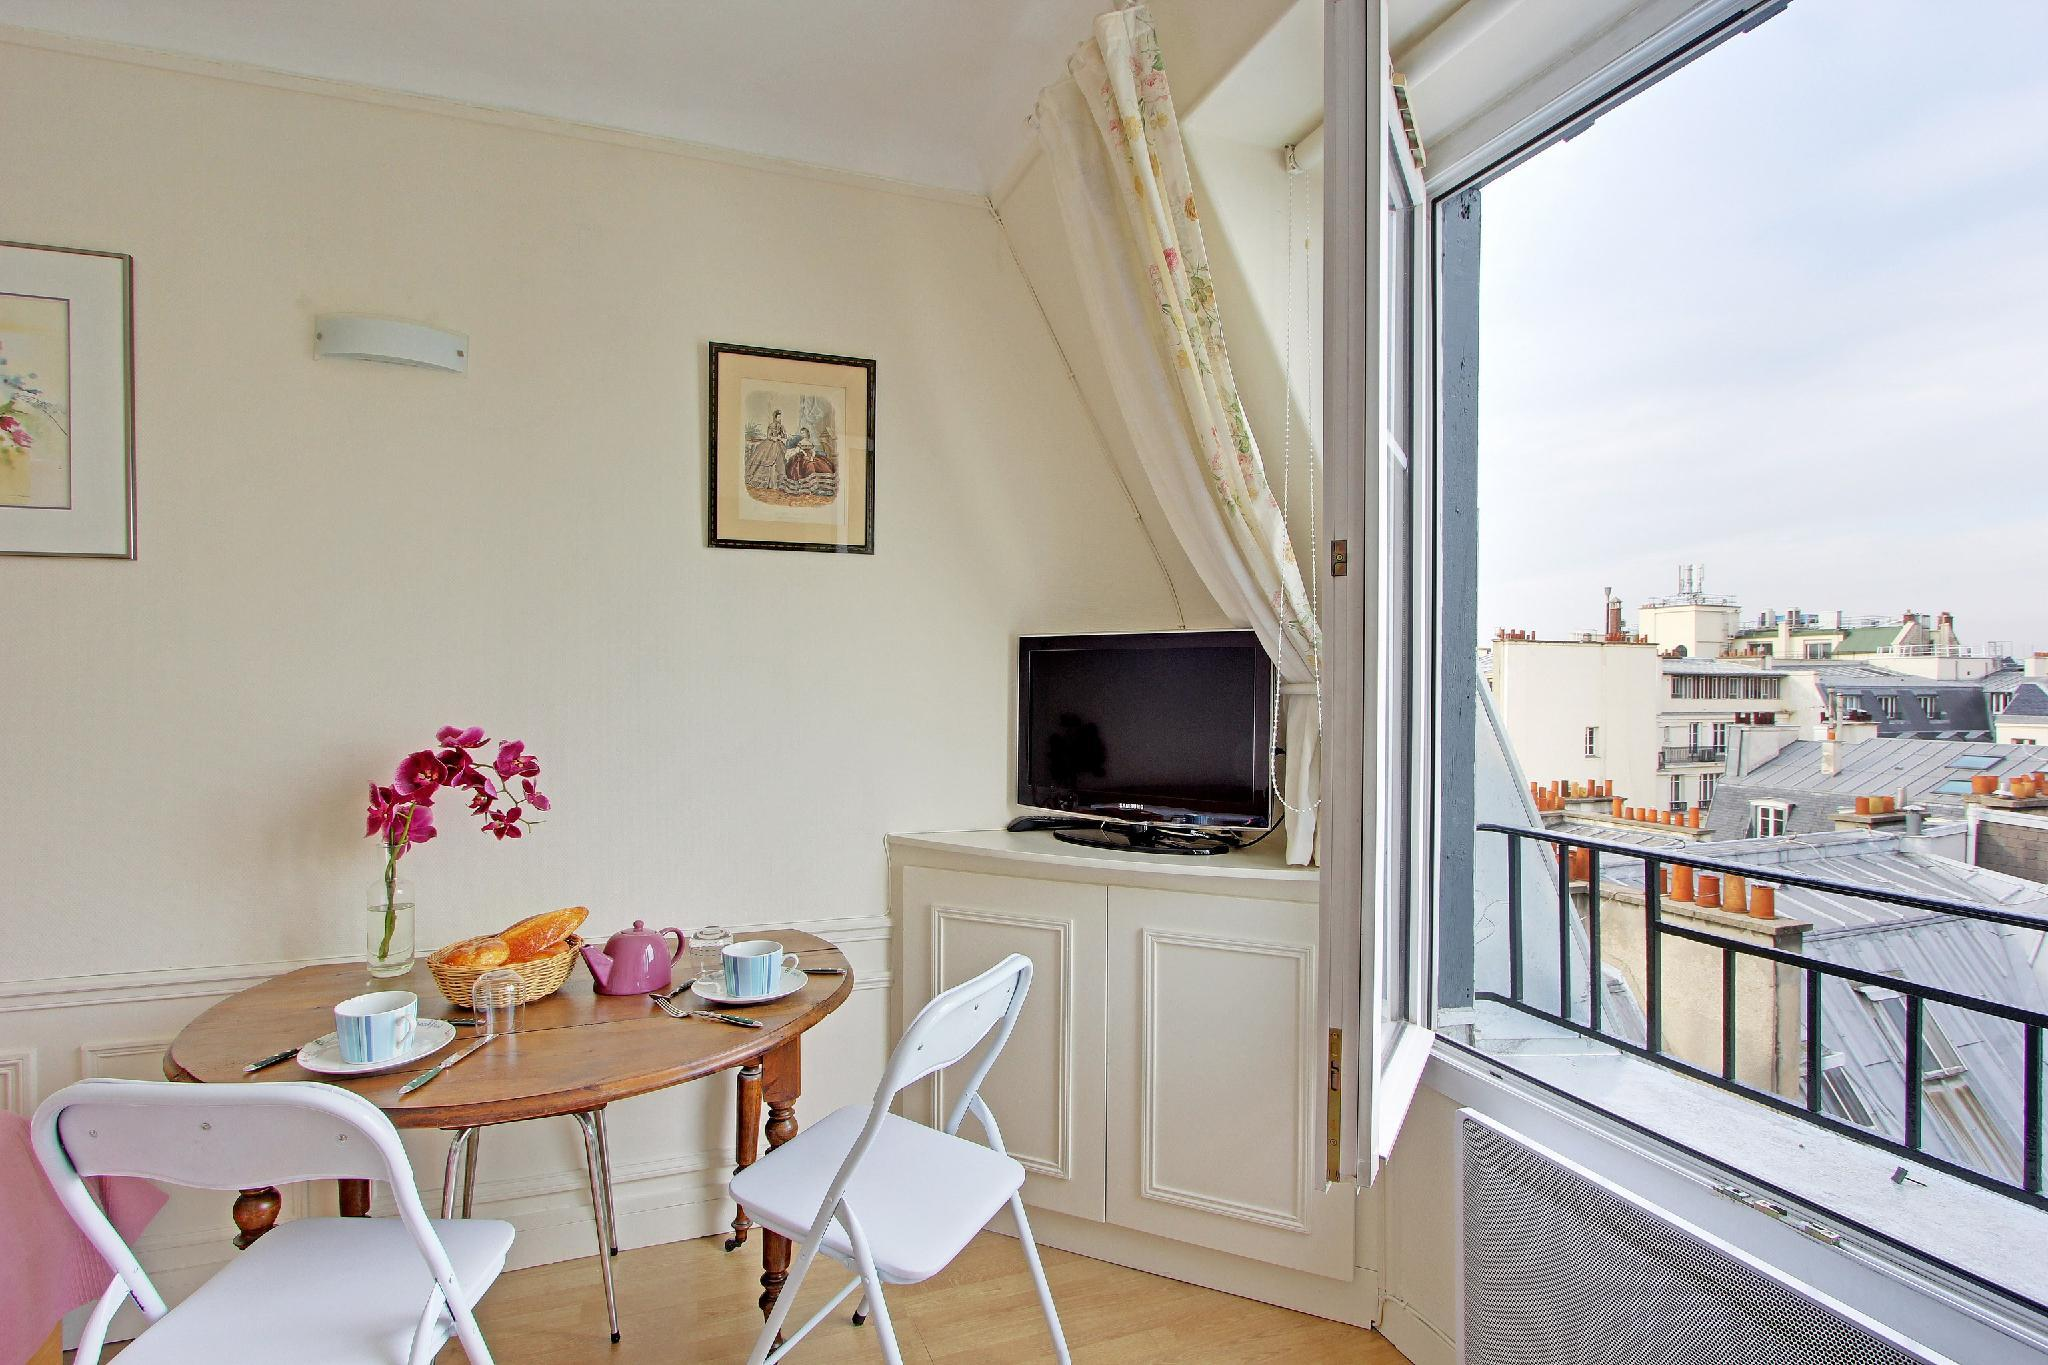 S08160 - Cozy studio for 2 people in Madeleine with a stunning view on  Sacré-Coeur, metro Havre